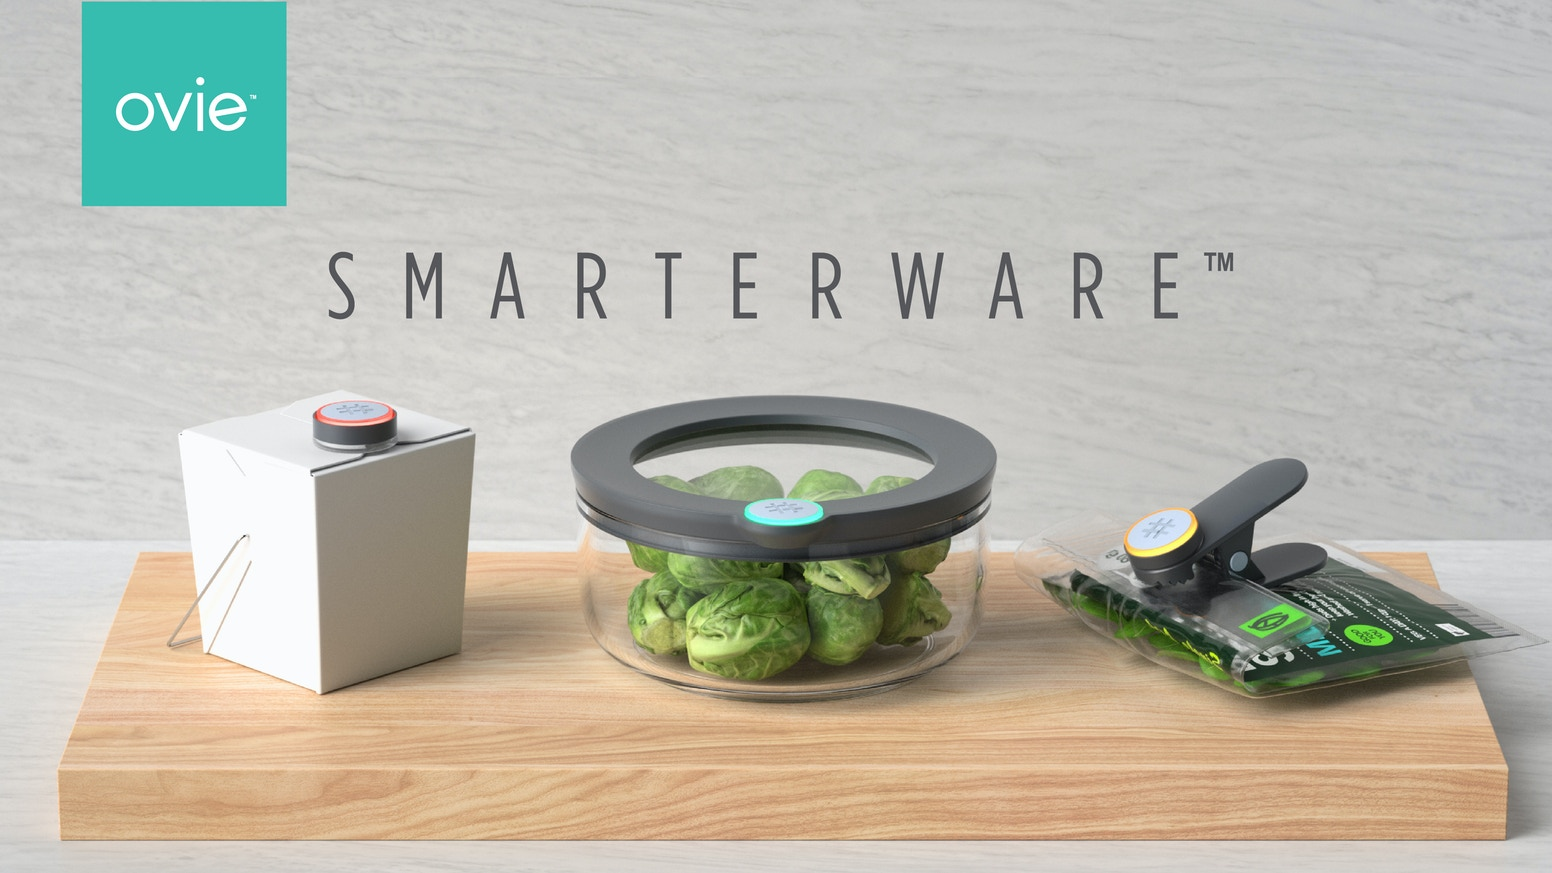 Ovie plus Amazon Alexa make it easy for you to keep track of what's in your fridge and waste less food.